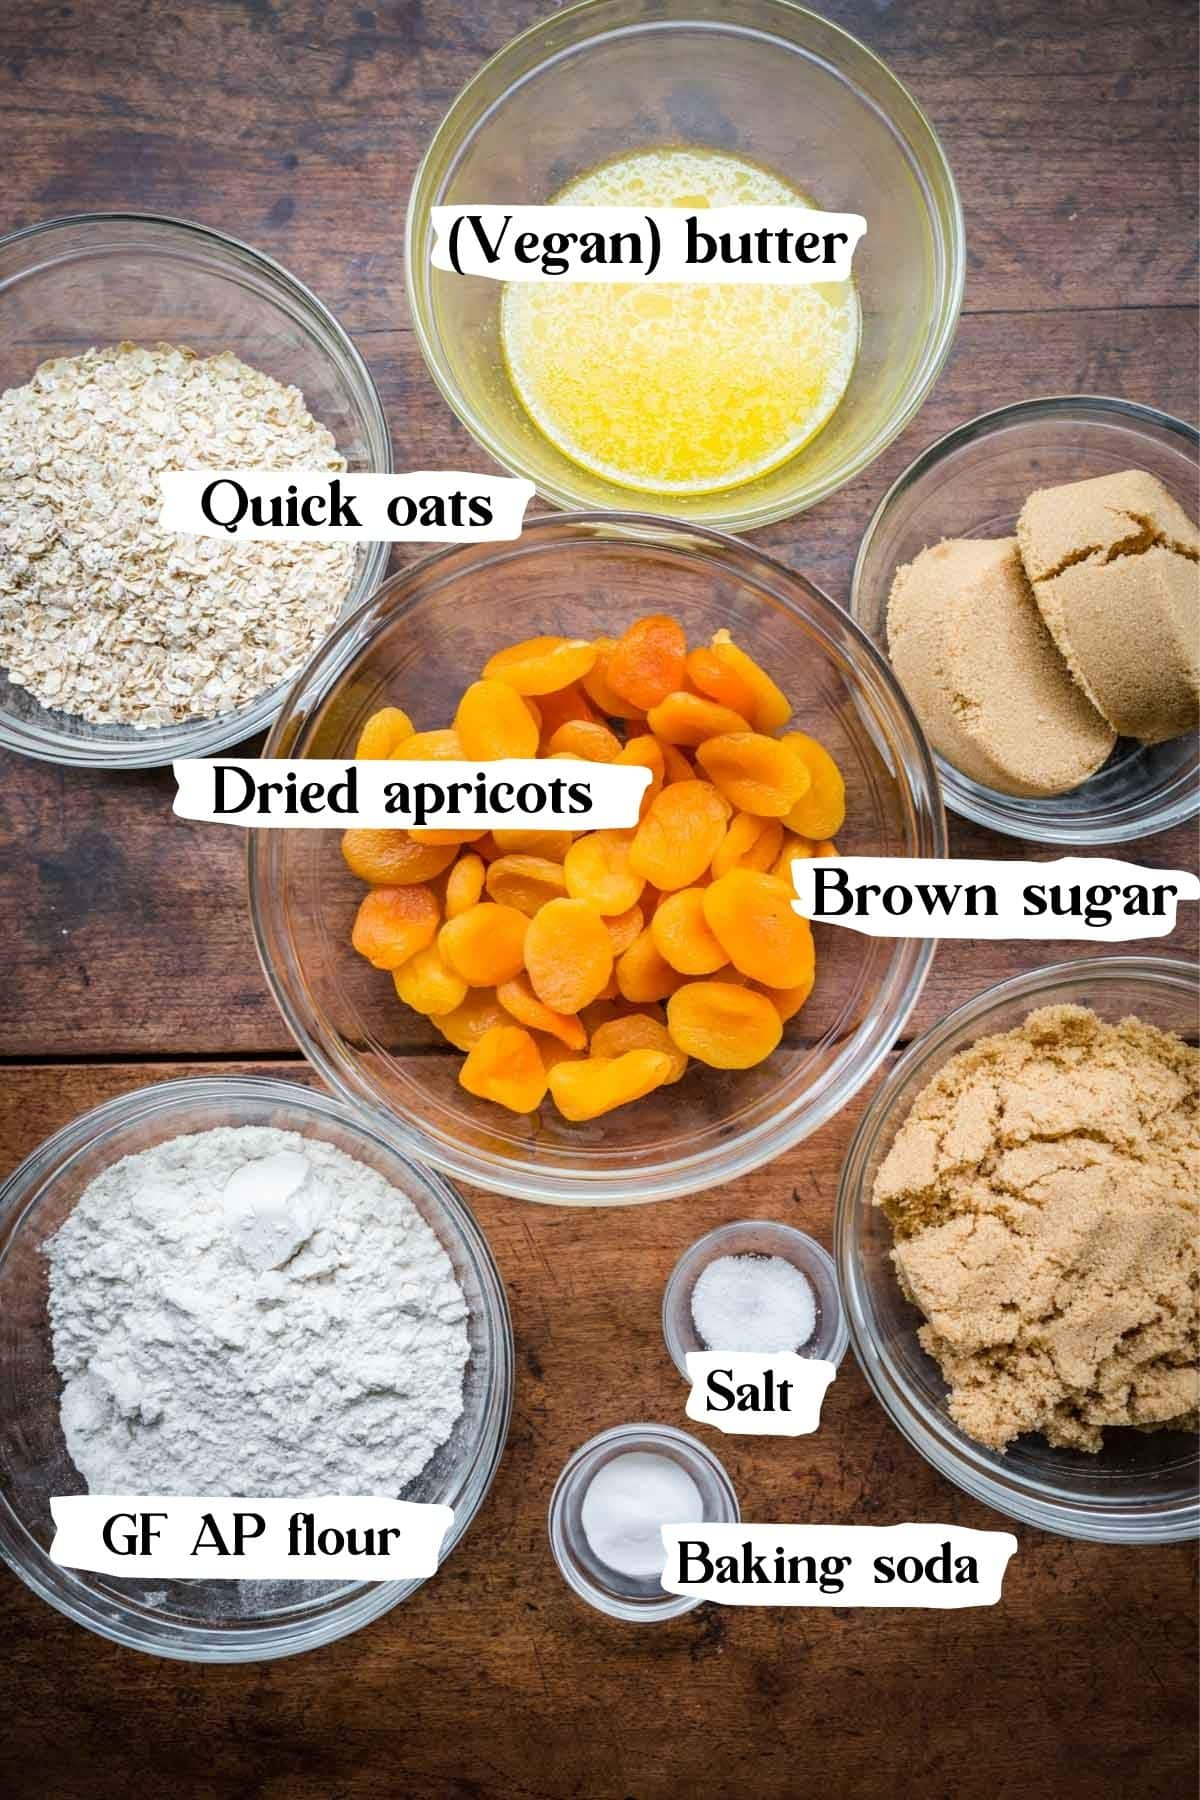 Ingredients you'll need to make the crumble bars, including oats, butter, dried apricots, brown sugar, flour, etc.